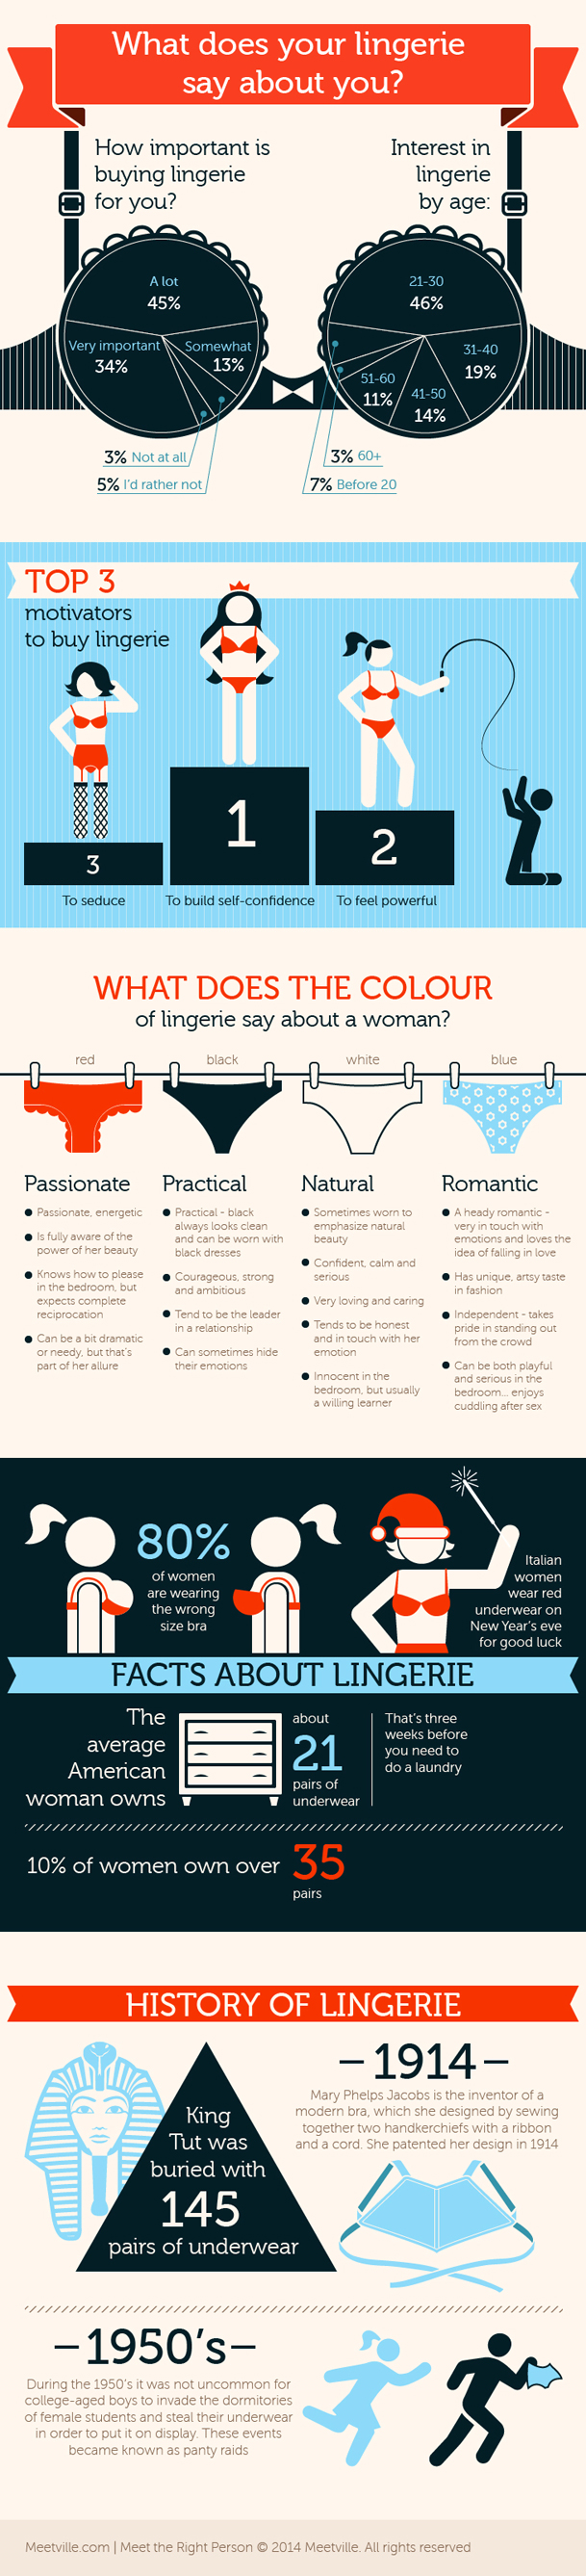 What-does-her-Lingerie-Say-Infographic-dating-singles-meetville-matchmaking